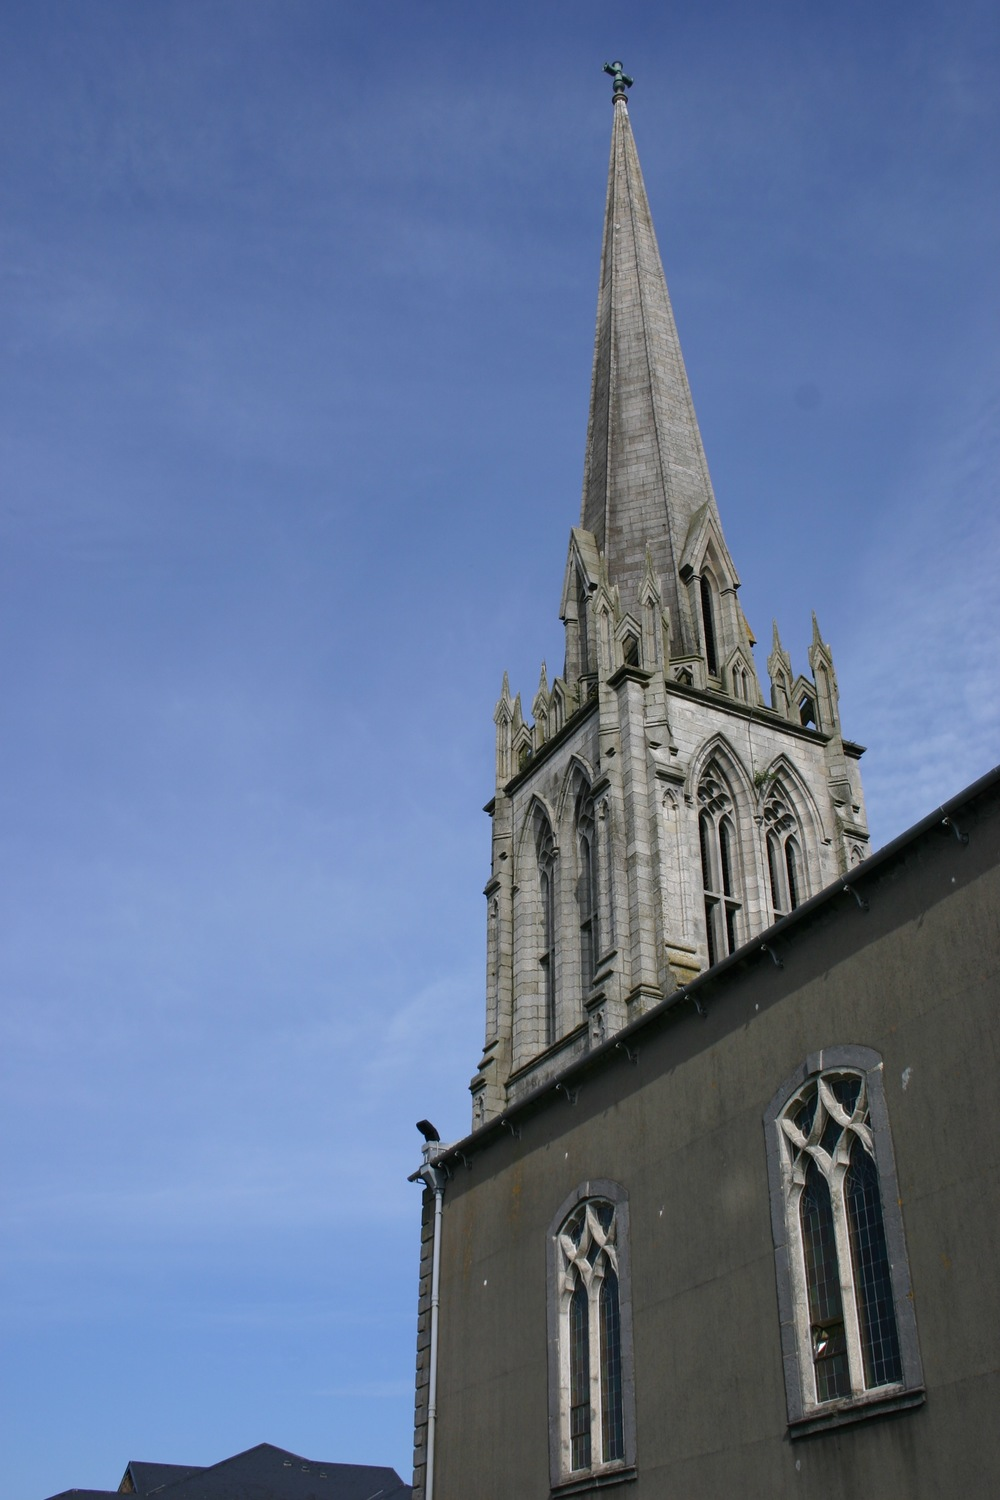 church of irelland carlow.jpg